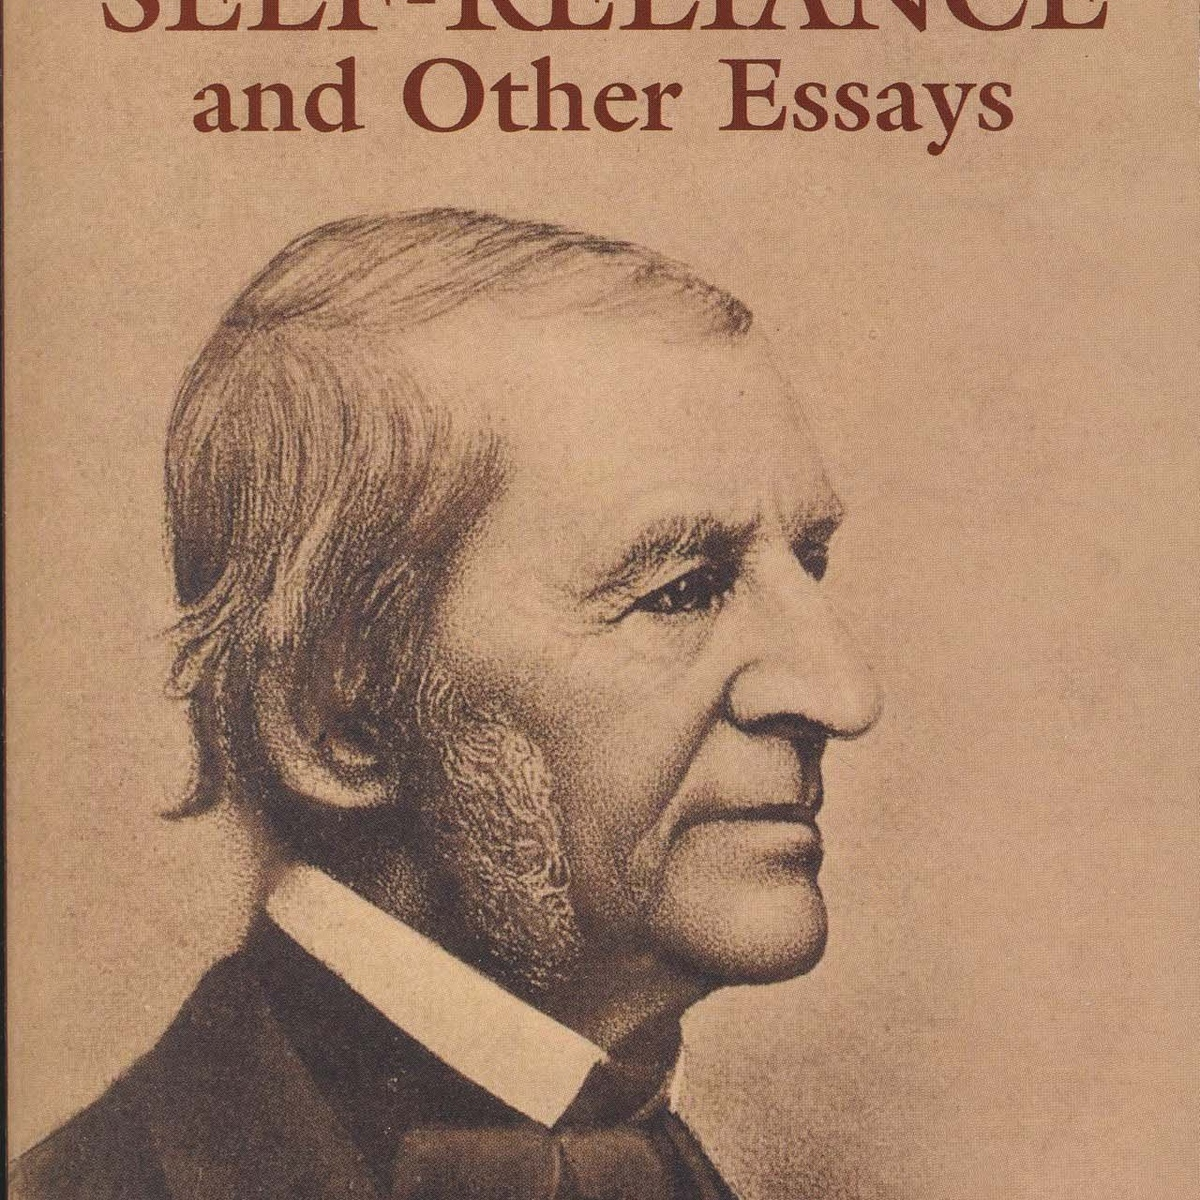 an overview of the intellectual movement by ralph waldo emerson The inspiration of his spiritual philosophy, the depth of his intellectual thought and the mystical  ralph waldo emerson is no  emerson, ralph waldo.